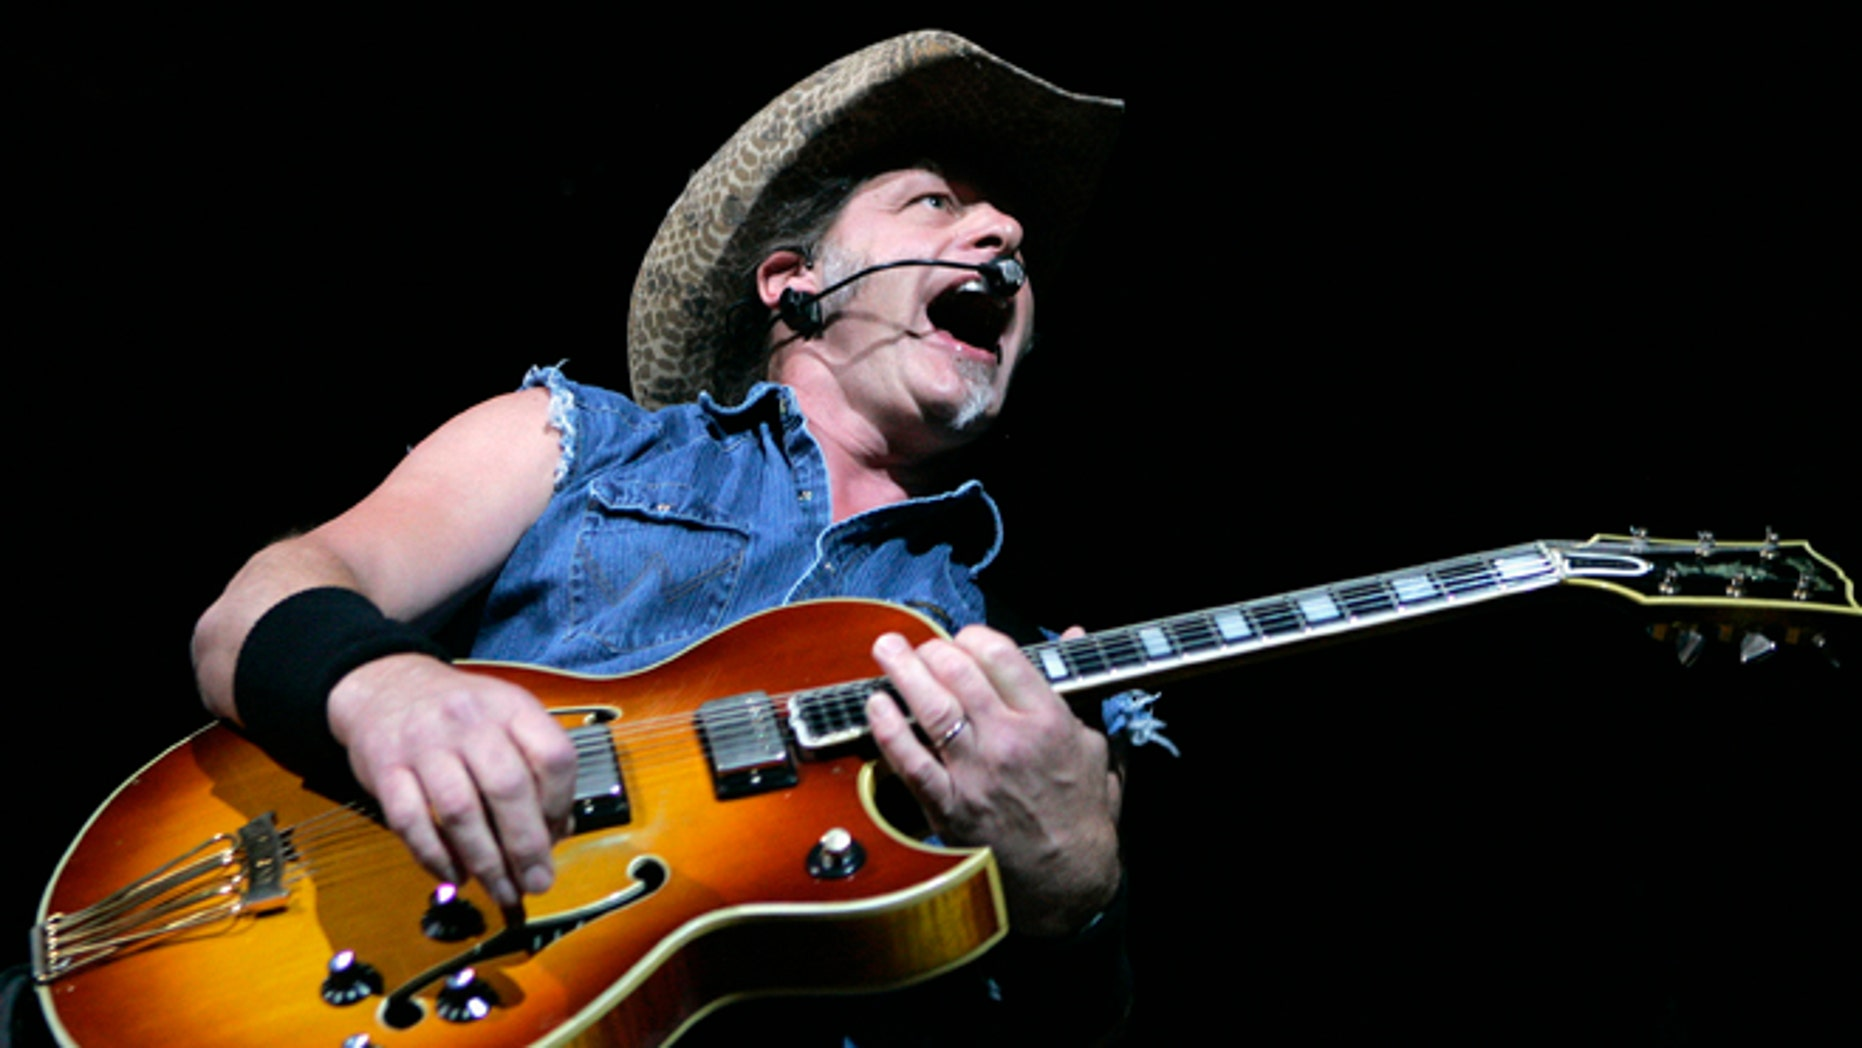 Aug. 11, 2007: Ted Nugent performs at a concert at the House of Blues at the Mandalay Bay Resort in Las Vegas, Nev.